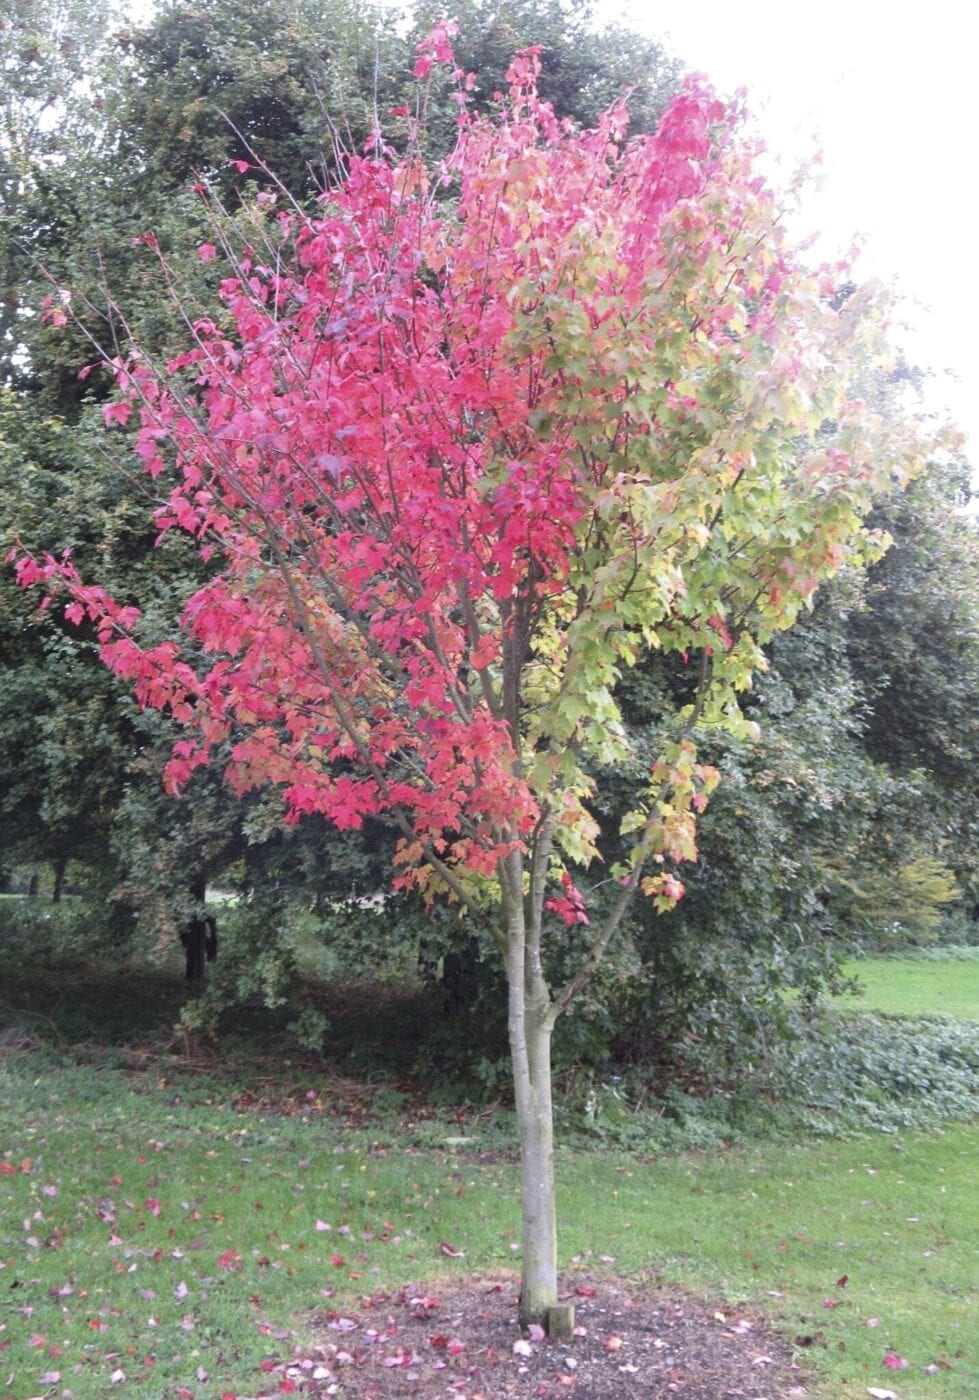 Red Maple tree in October